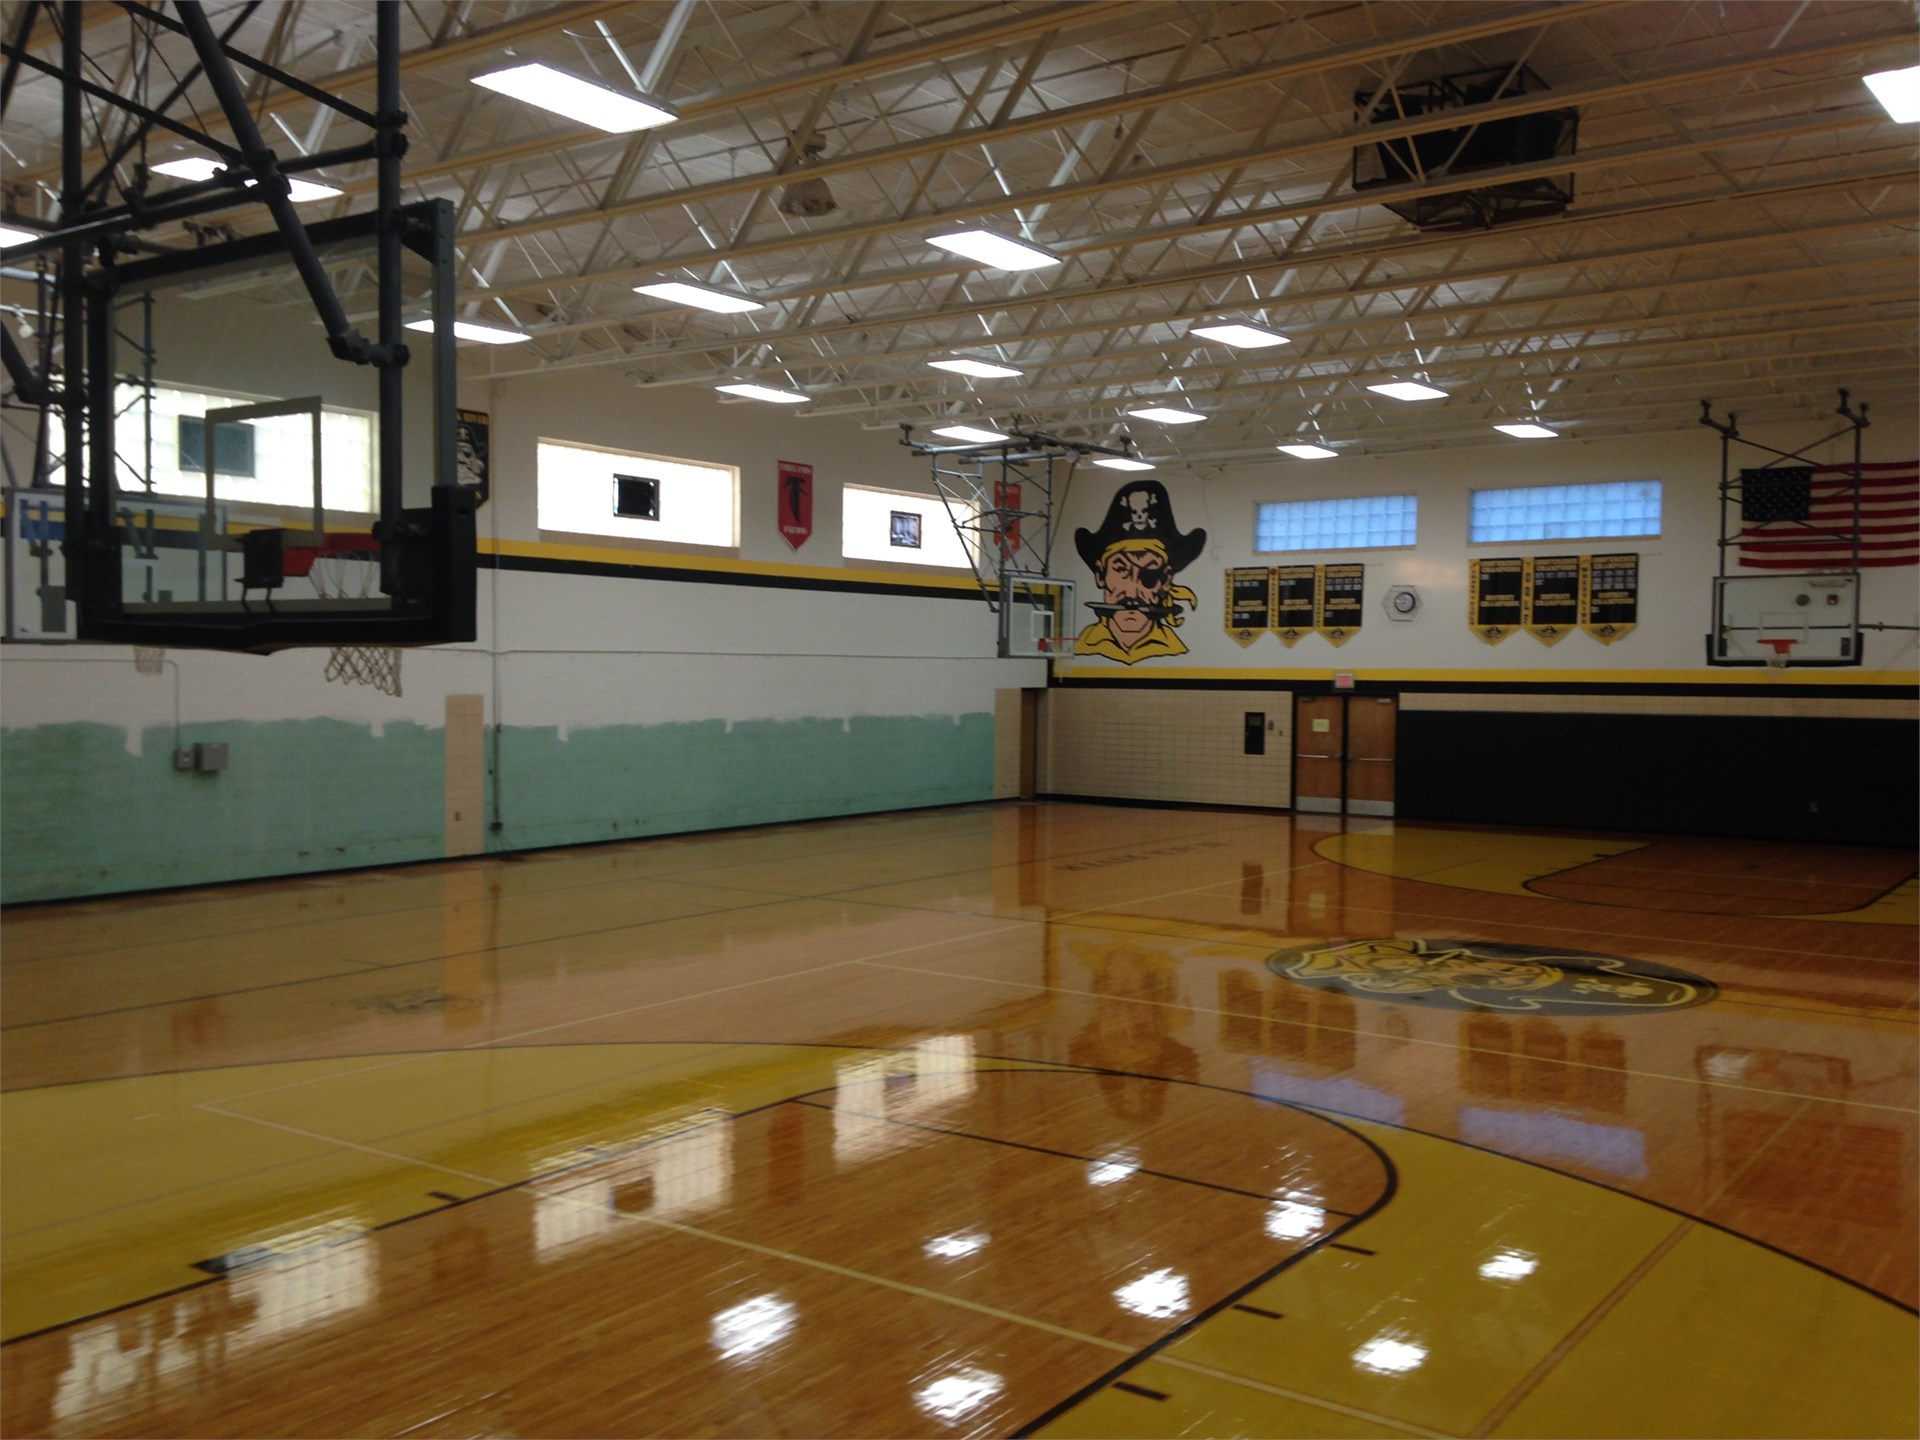 View of Gym before bleacher installation